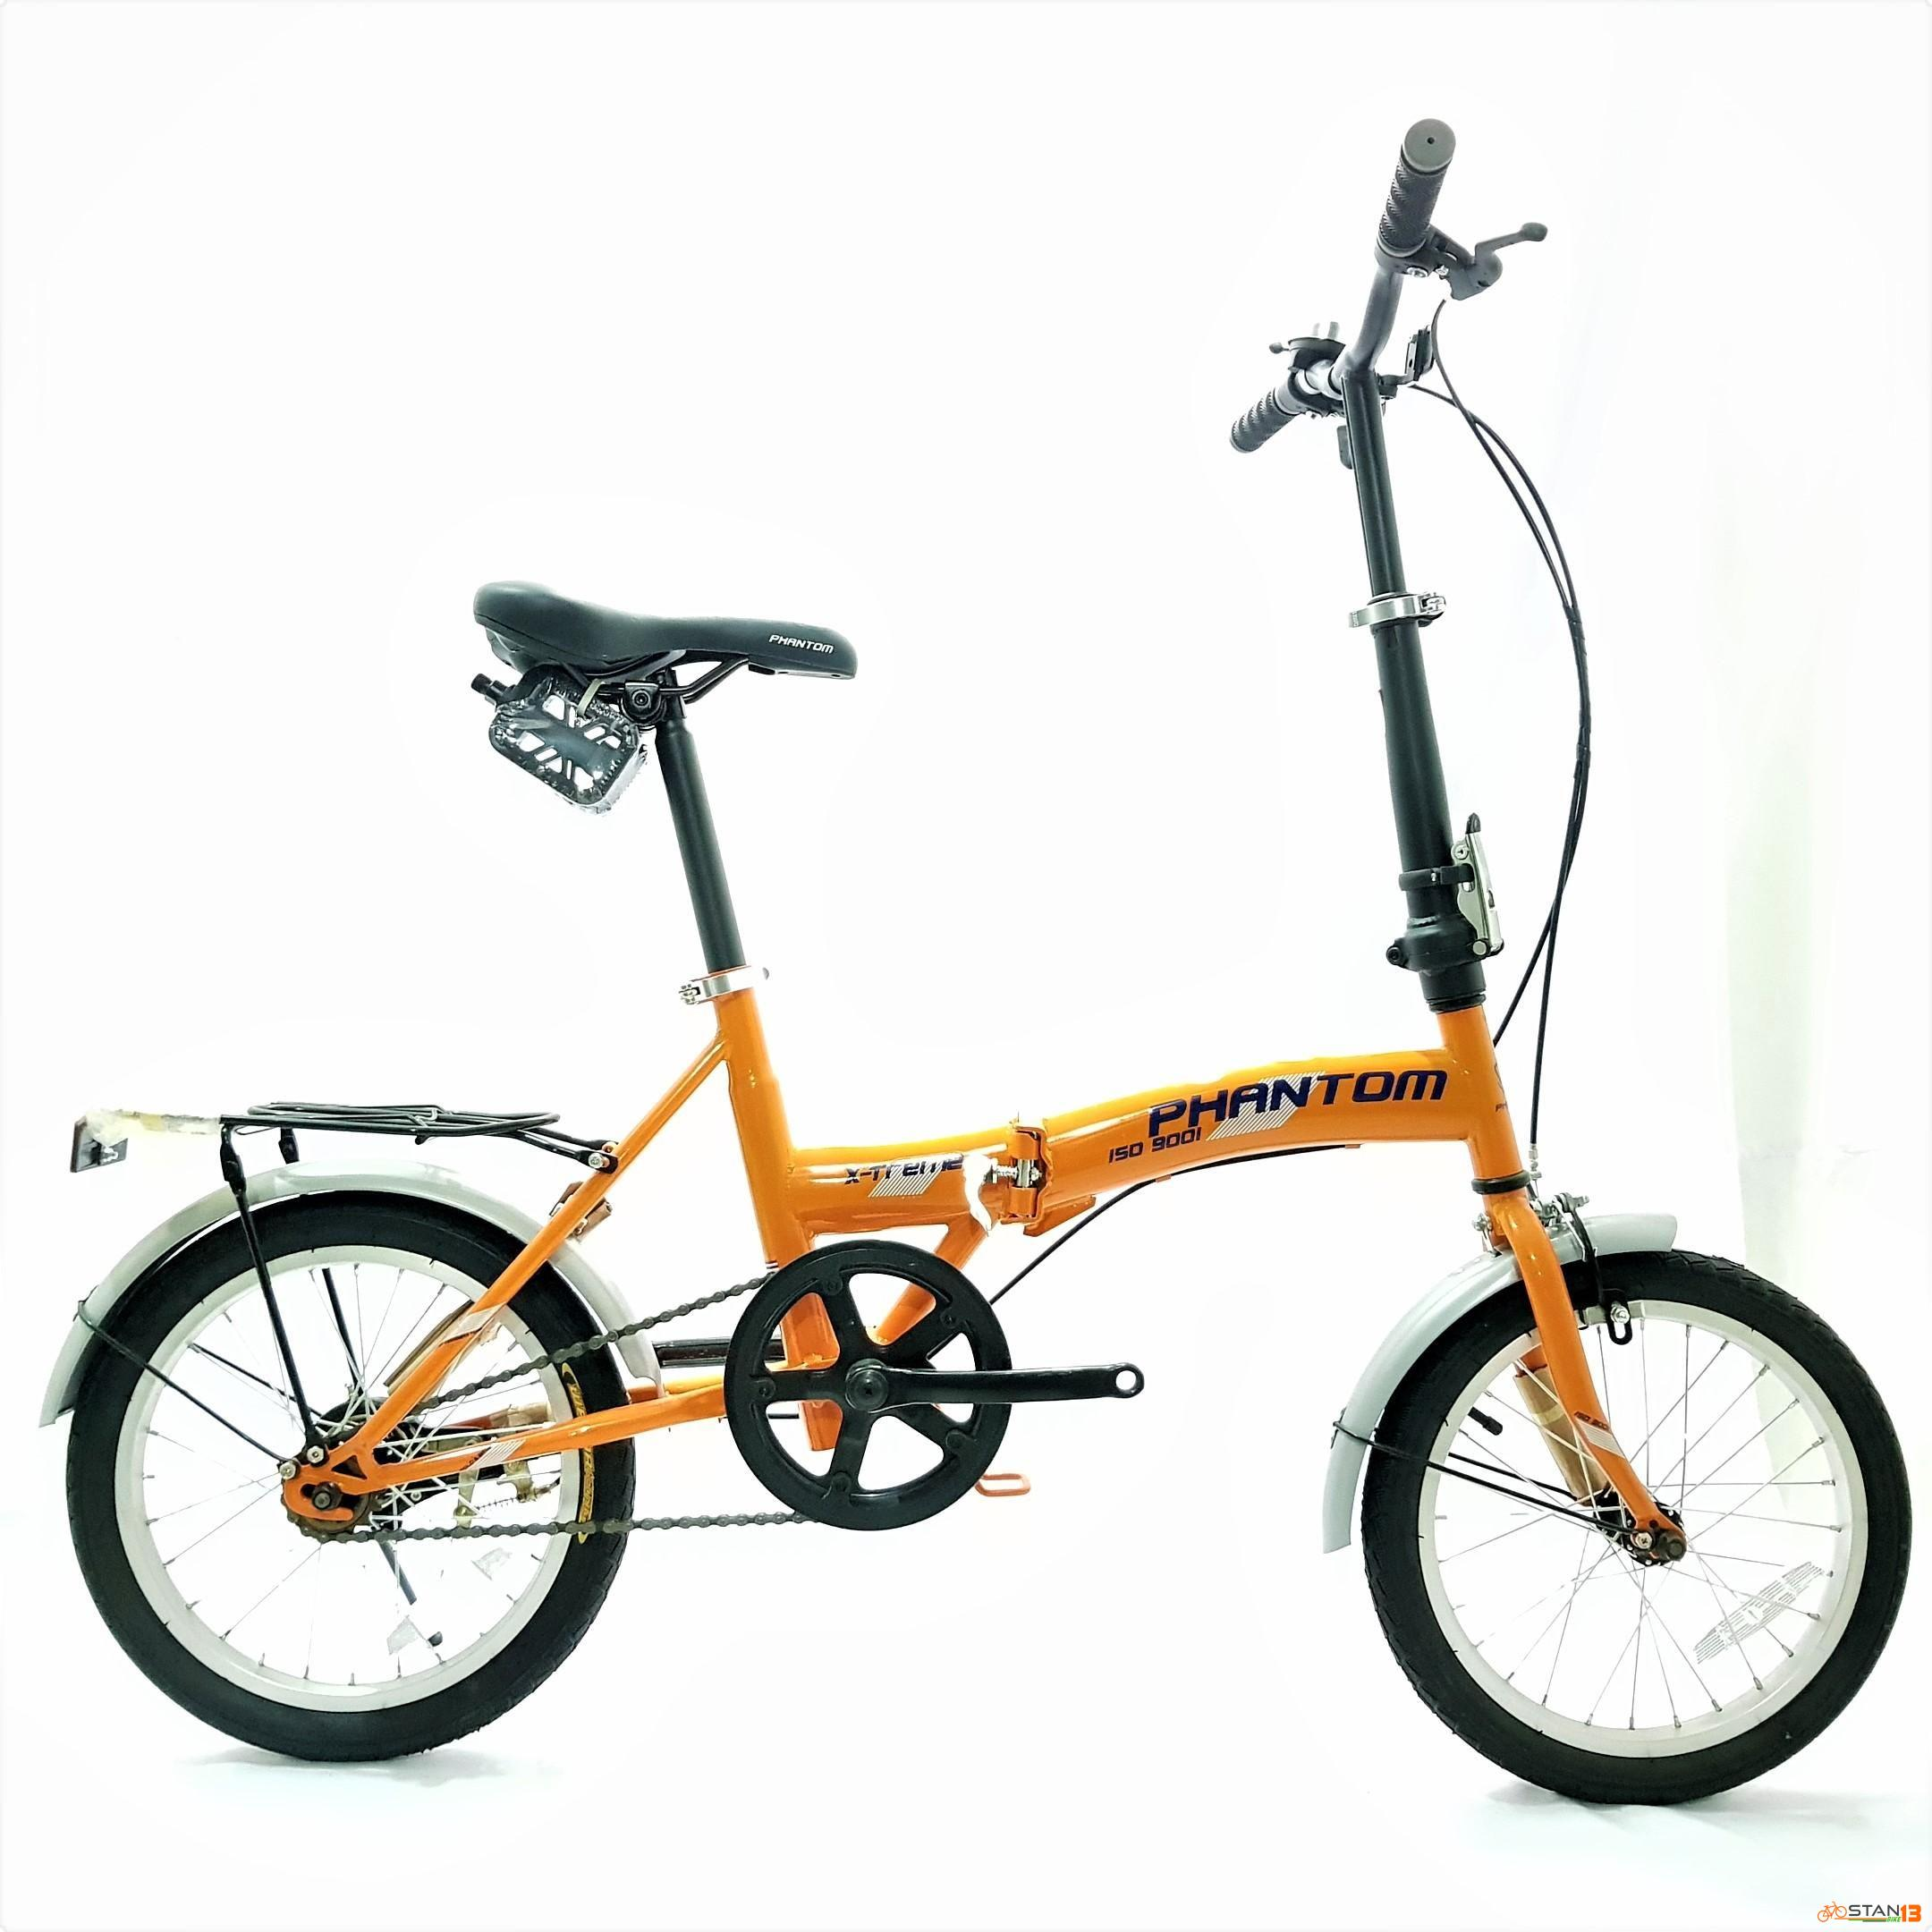 Phantom Extreme Folding Bike 16 inch Wheels With Carrier and Fender